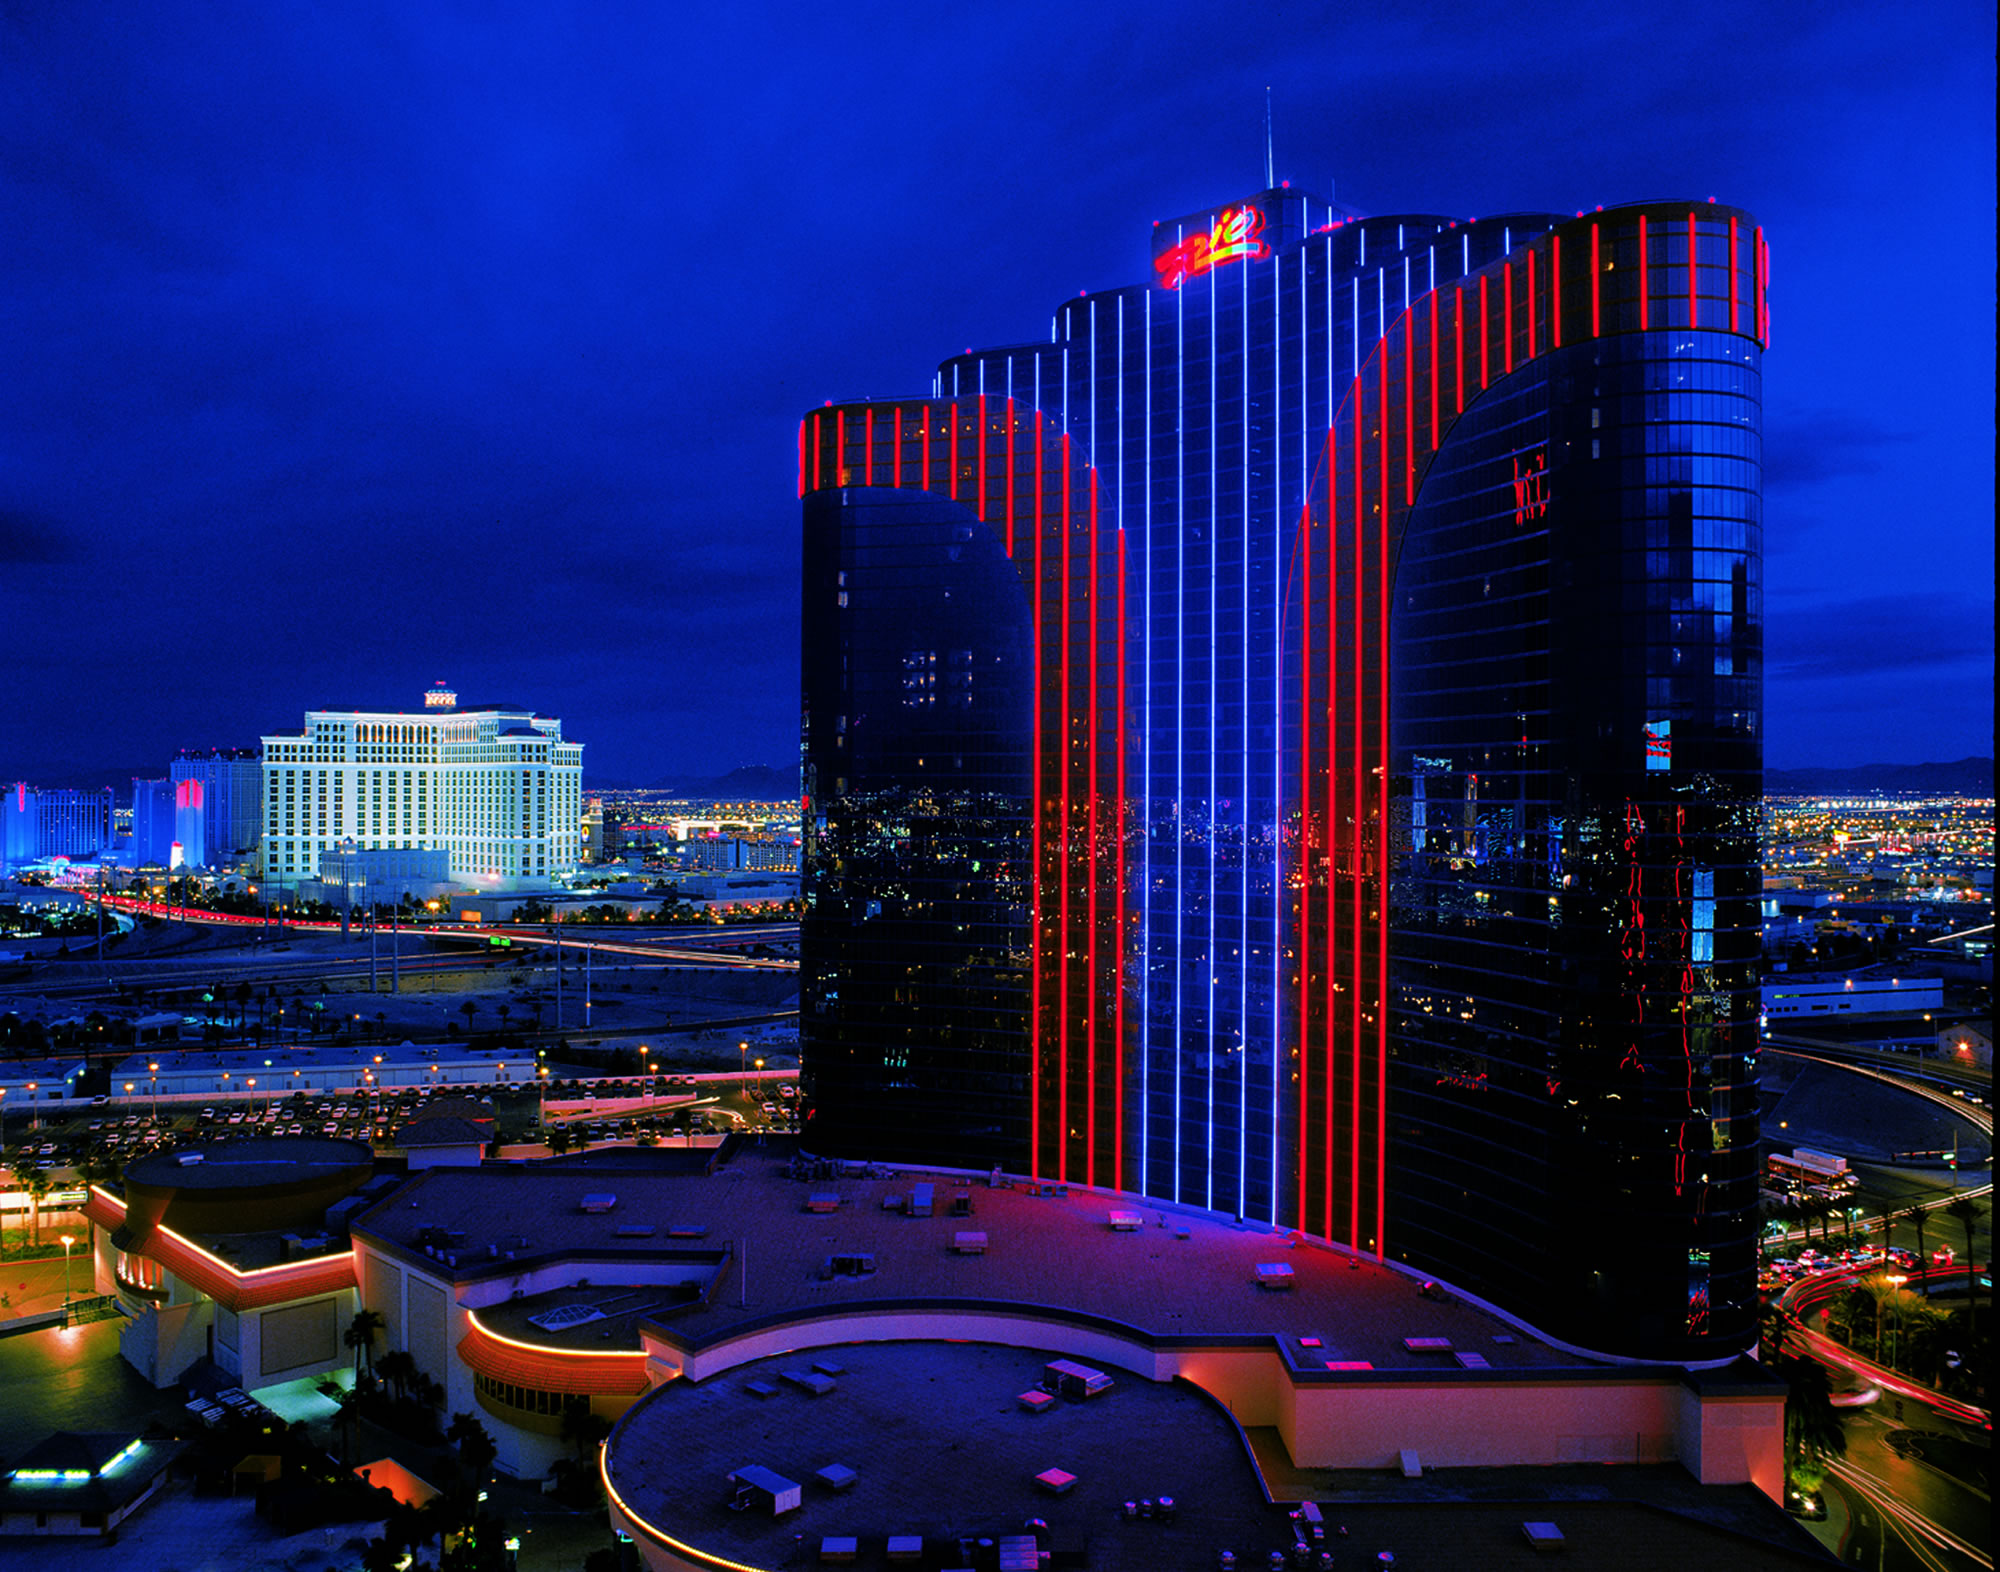 The rio hotel and casino - las vegas legal gambling age in indiana